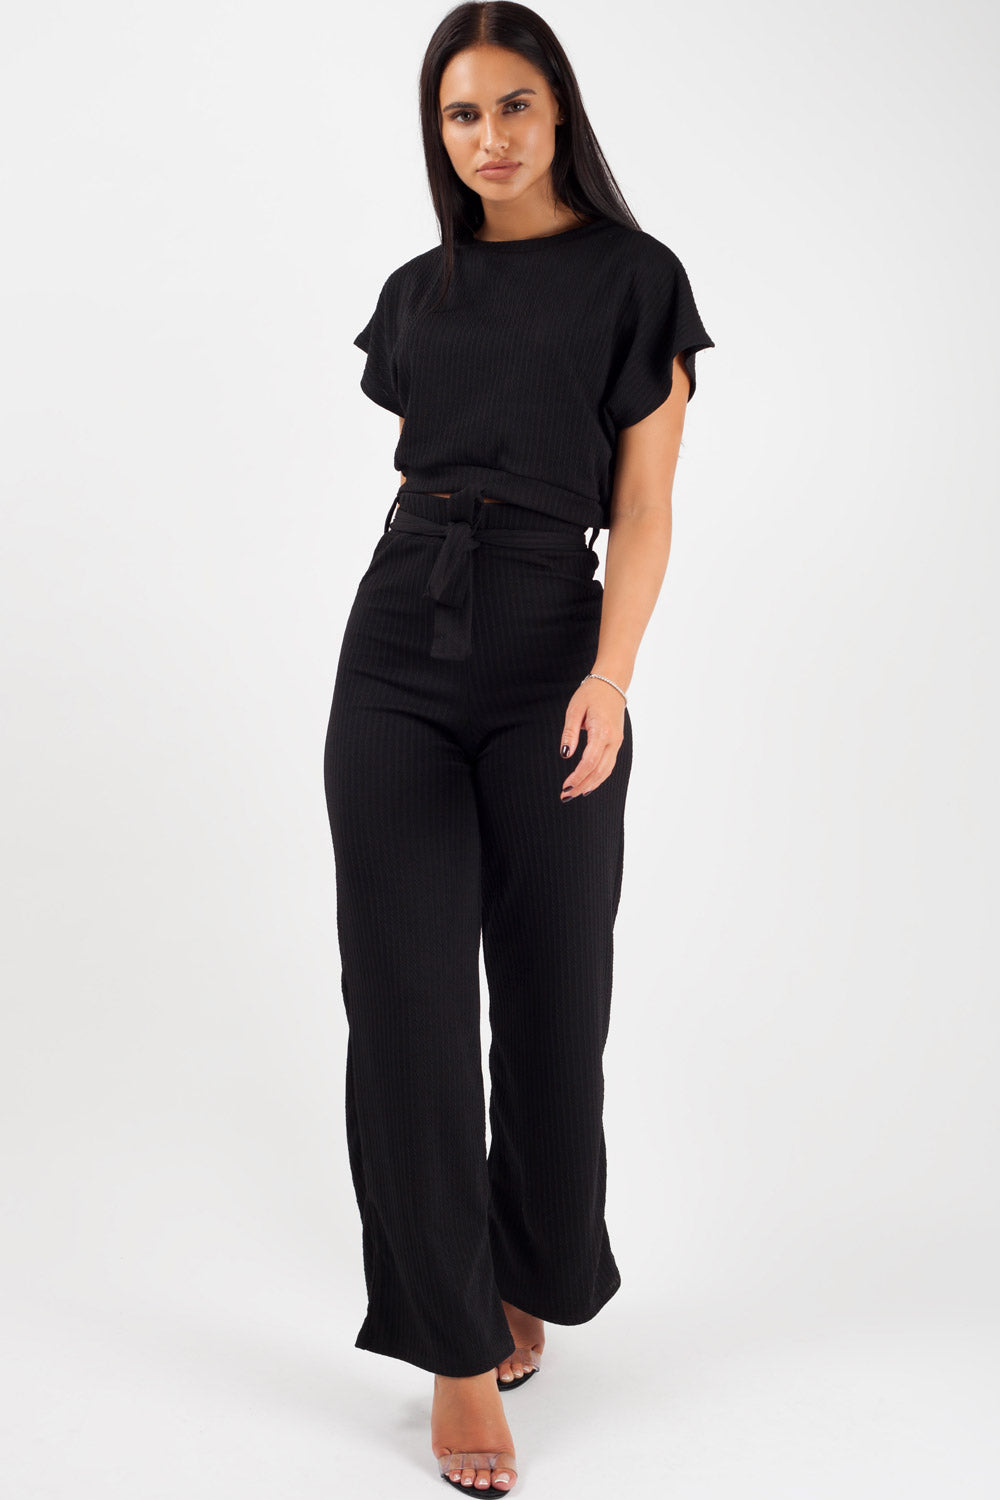 wide leg loungewear co ord set balck